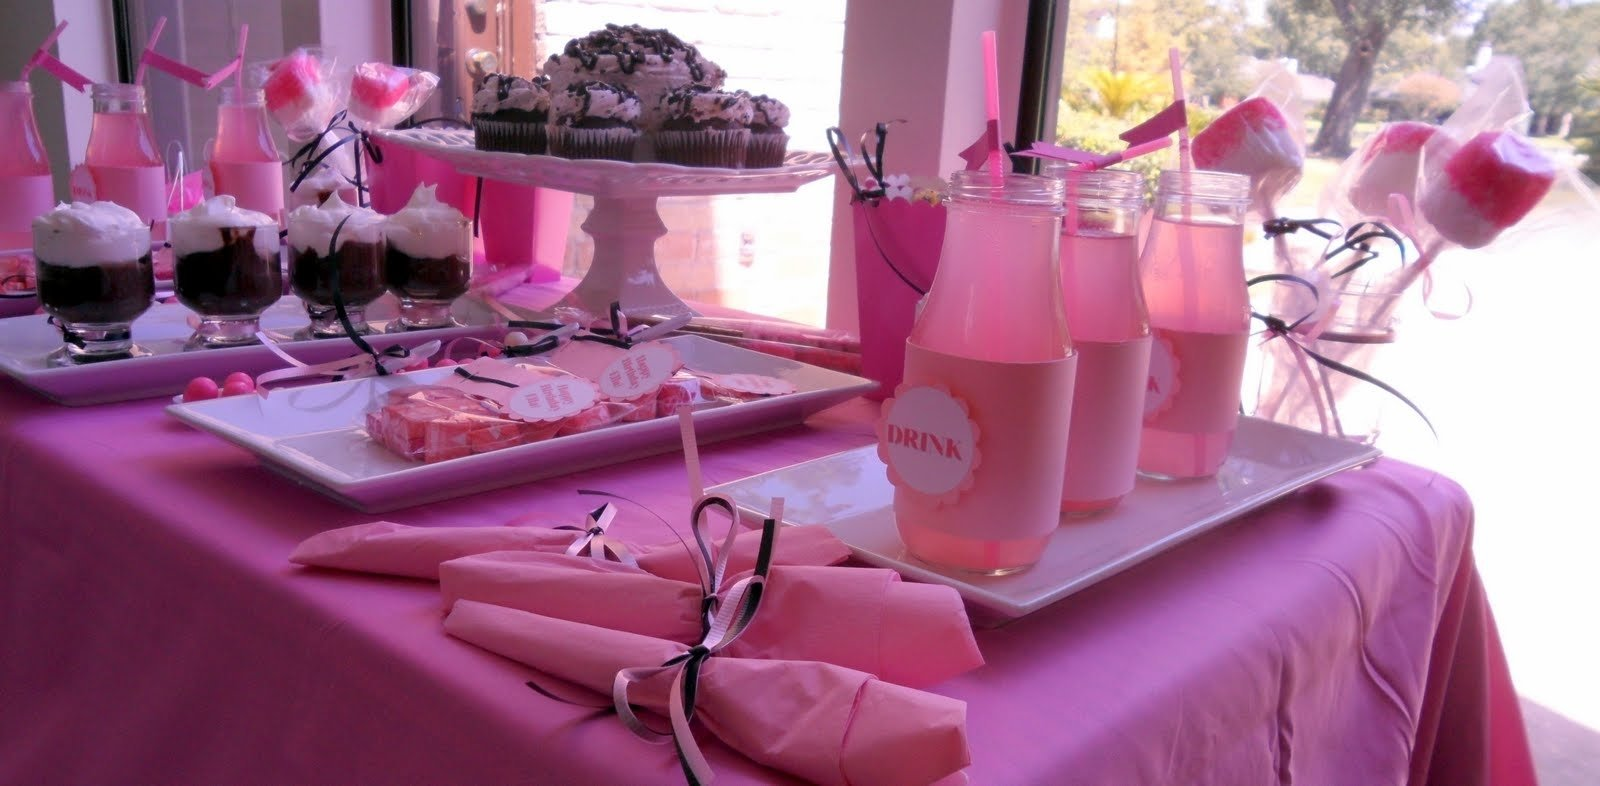 10 Great Birthday Party Ideas For Girls Age 6 glamour avenue parties the blog glamorous barbie inspired spa 2020